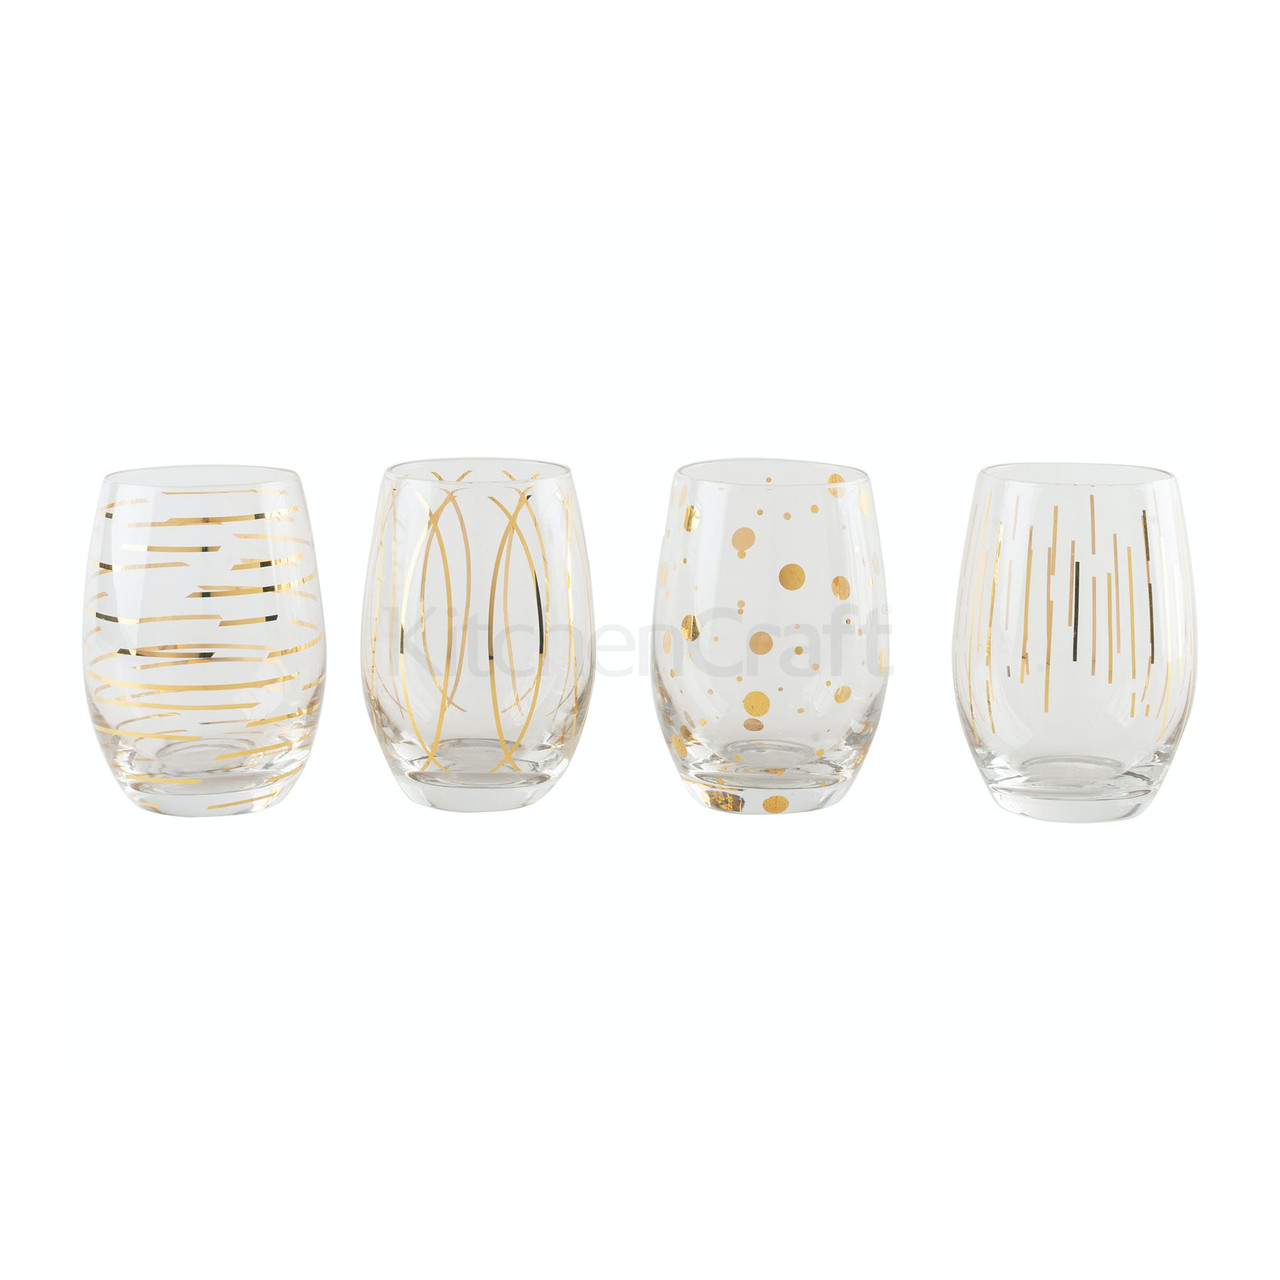 Mikasa Cheers Metallic Gold Set Of 4 Stemless 470 ml Wine Glasses (LOCAL DELIVERY ONLY)